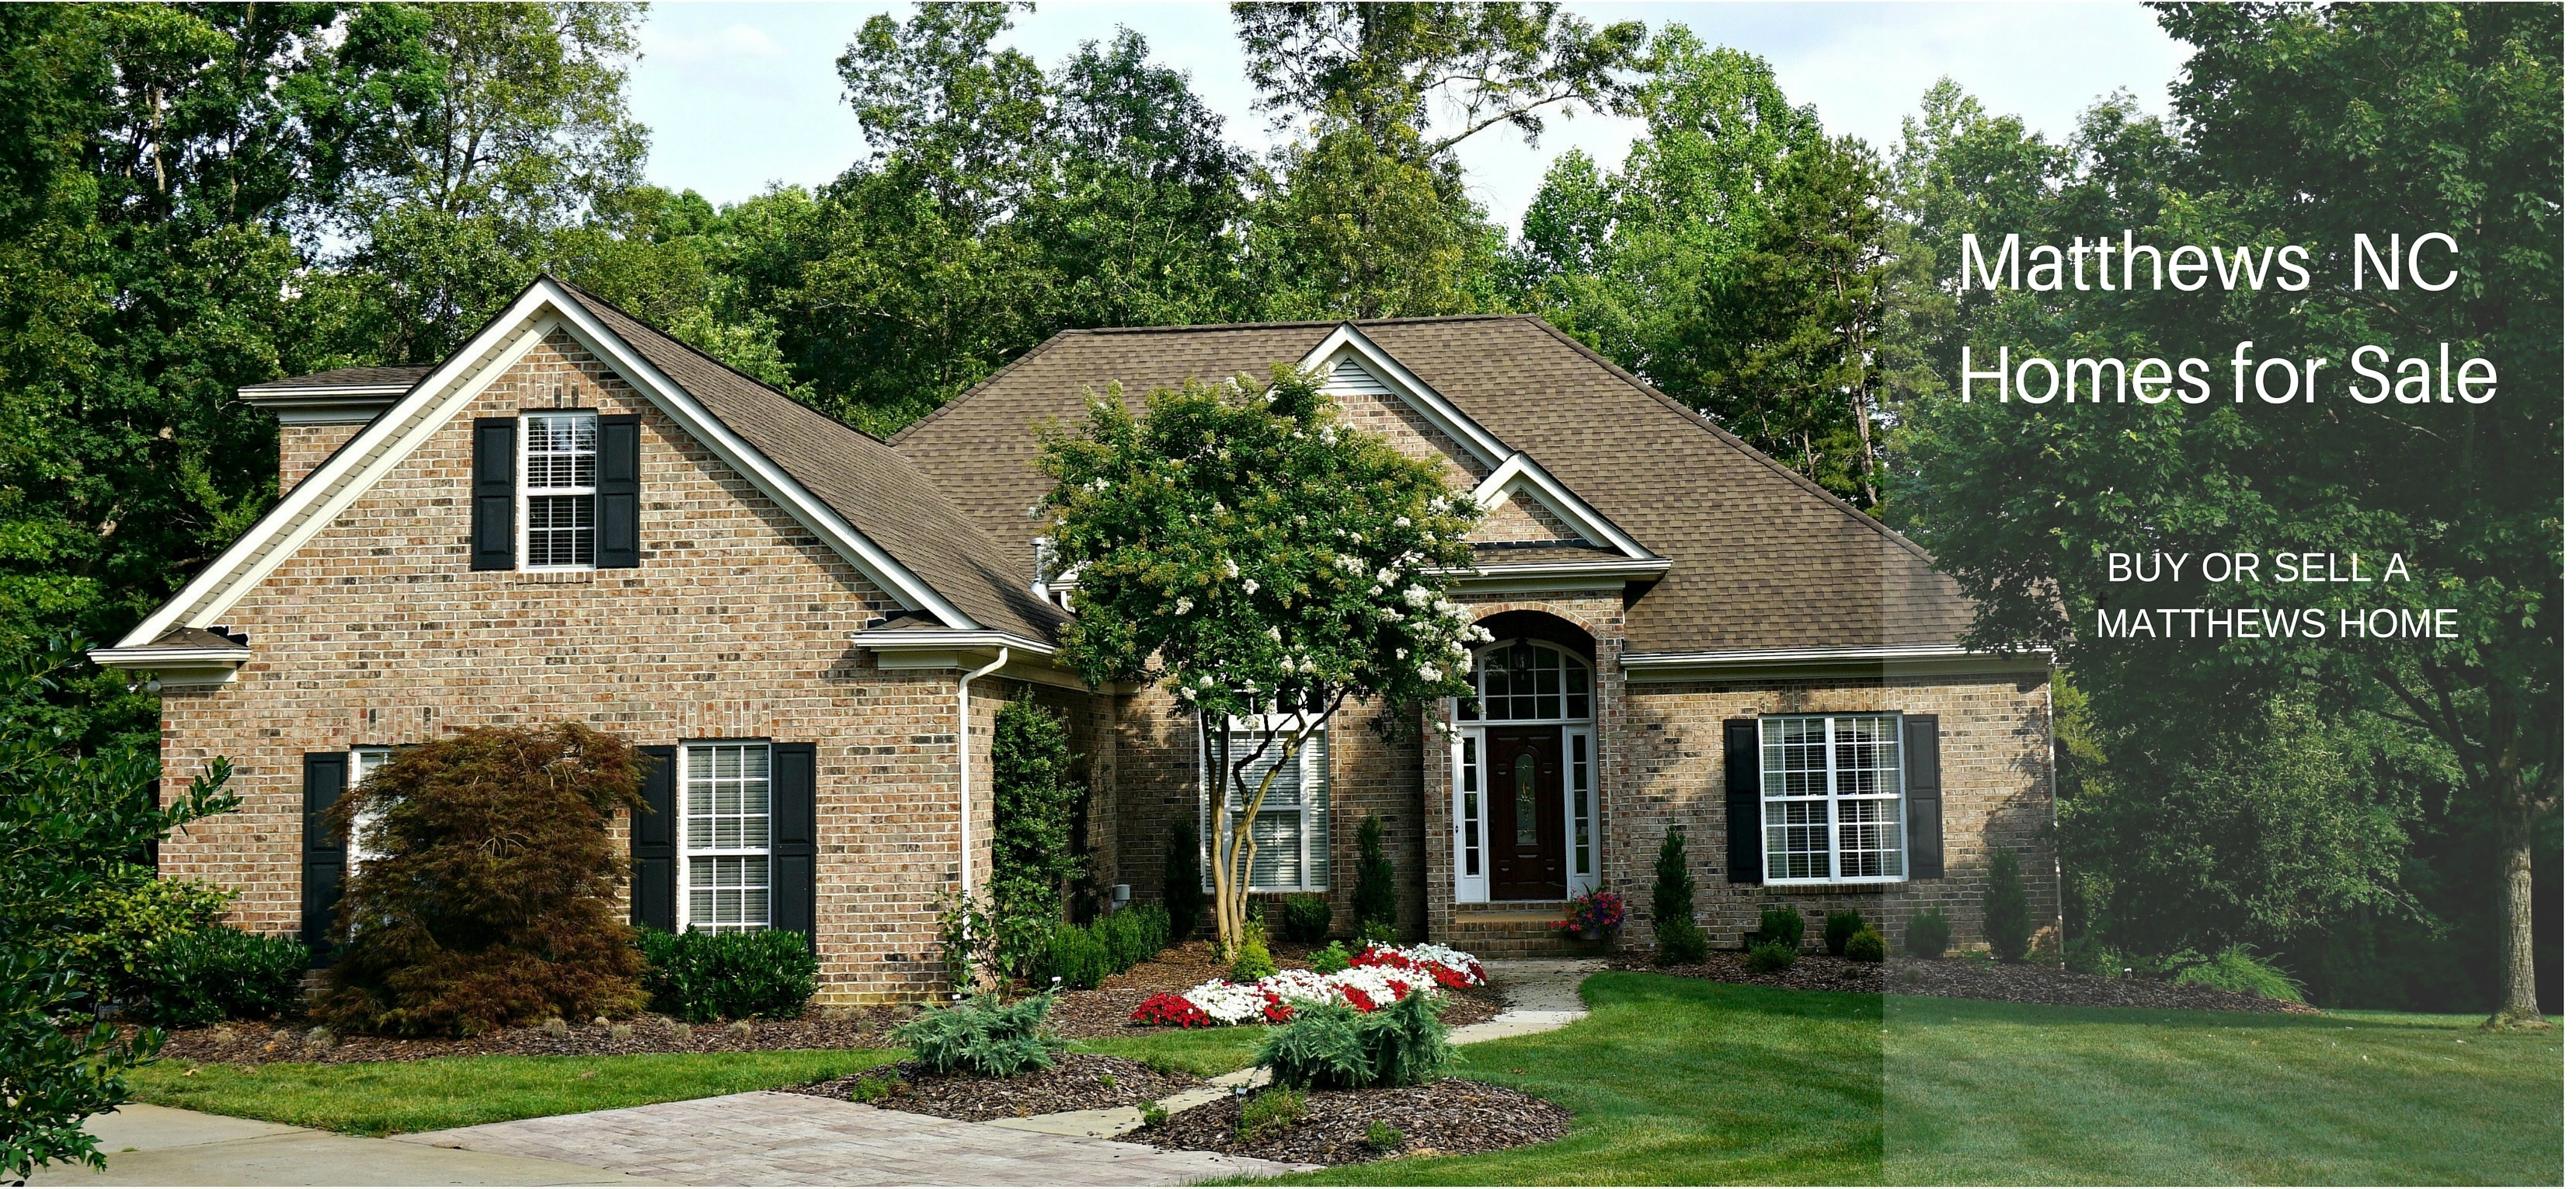 Homes for sale in Matthews NC